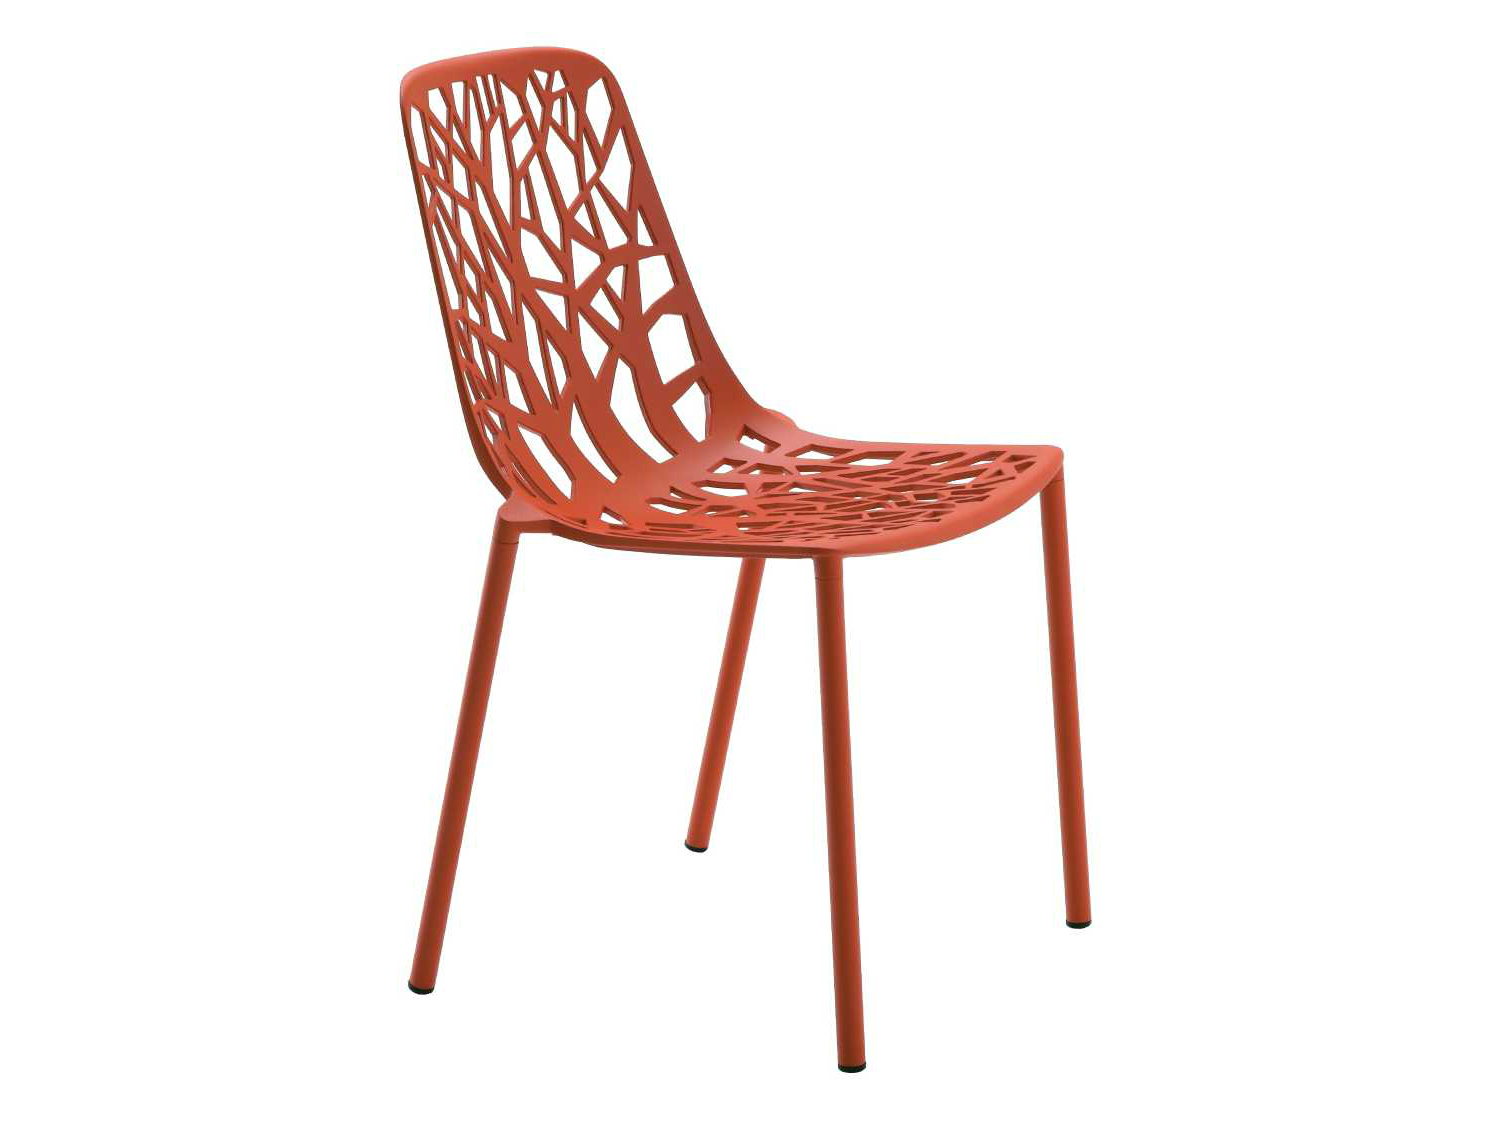 Fast-forest-chair-coralred-def